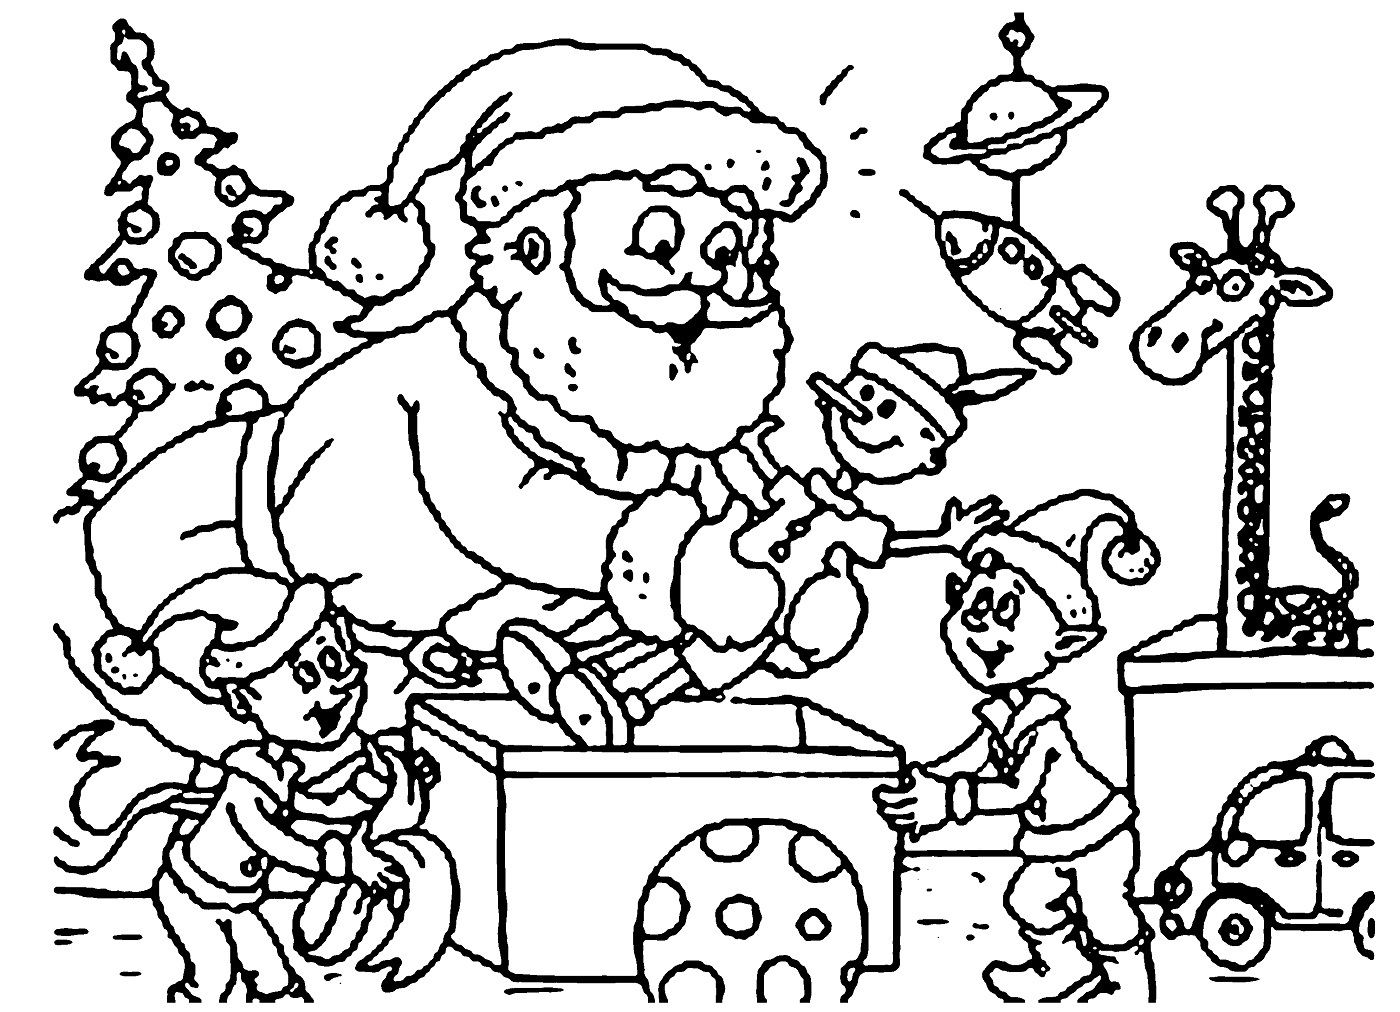 1400x1012 19 merry christmas santa claus coloring pages clipart images